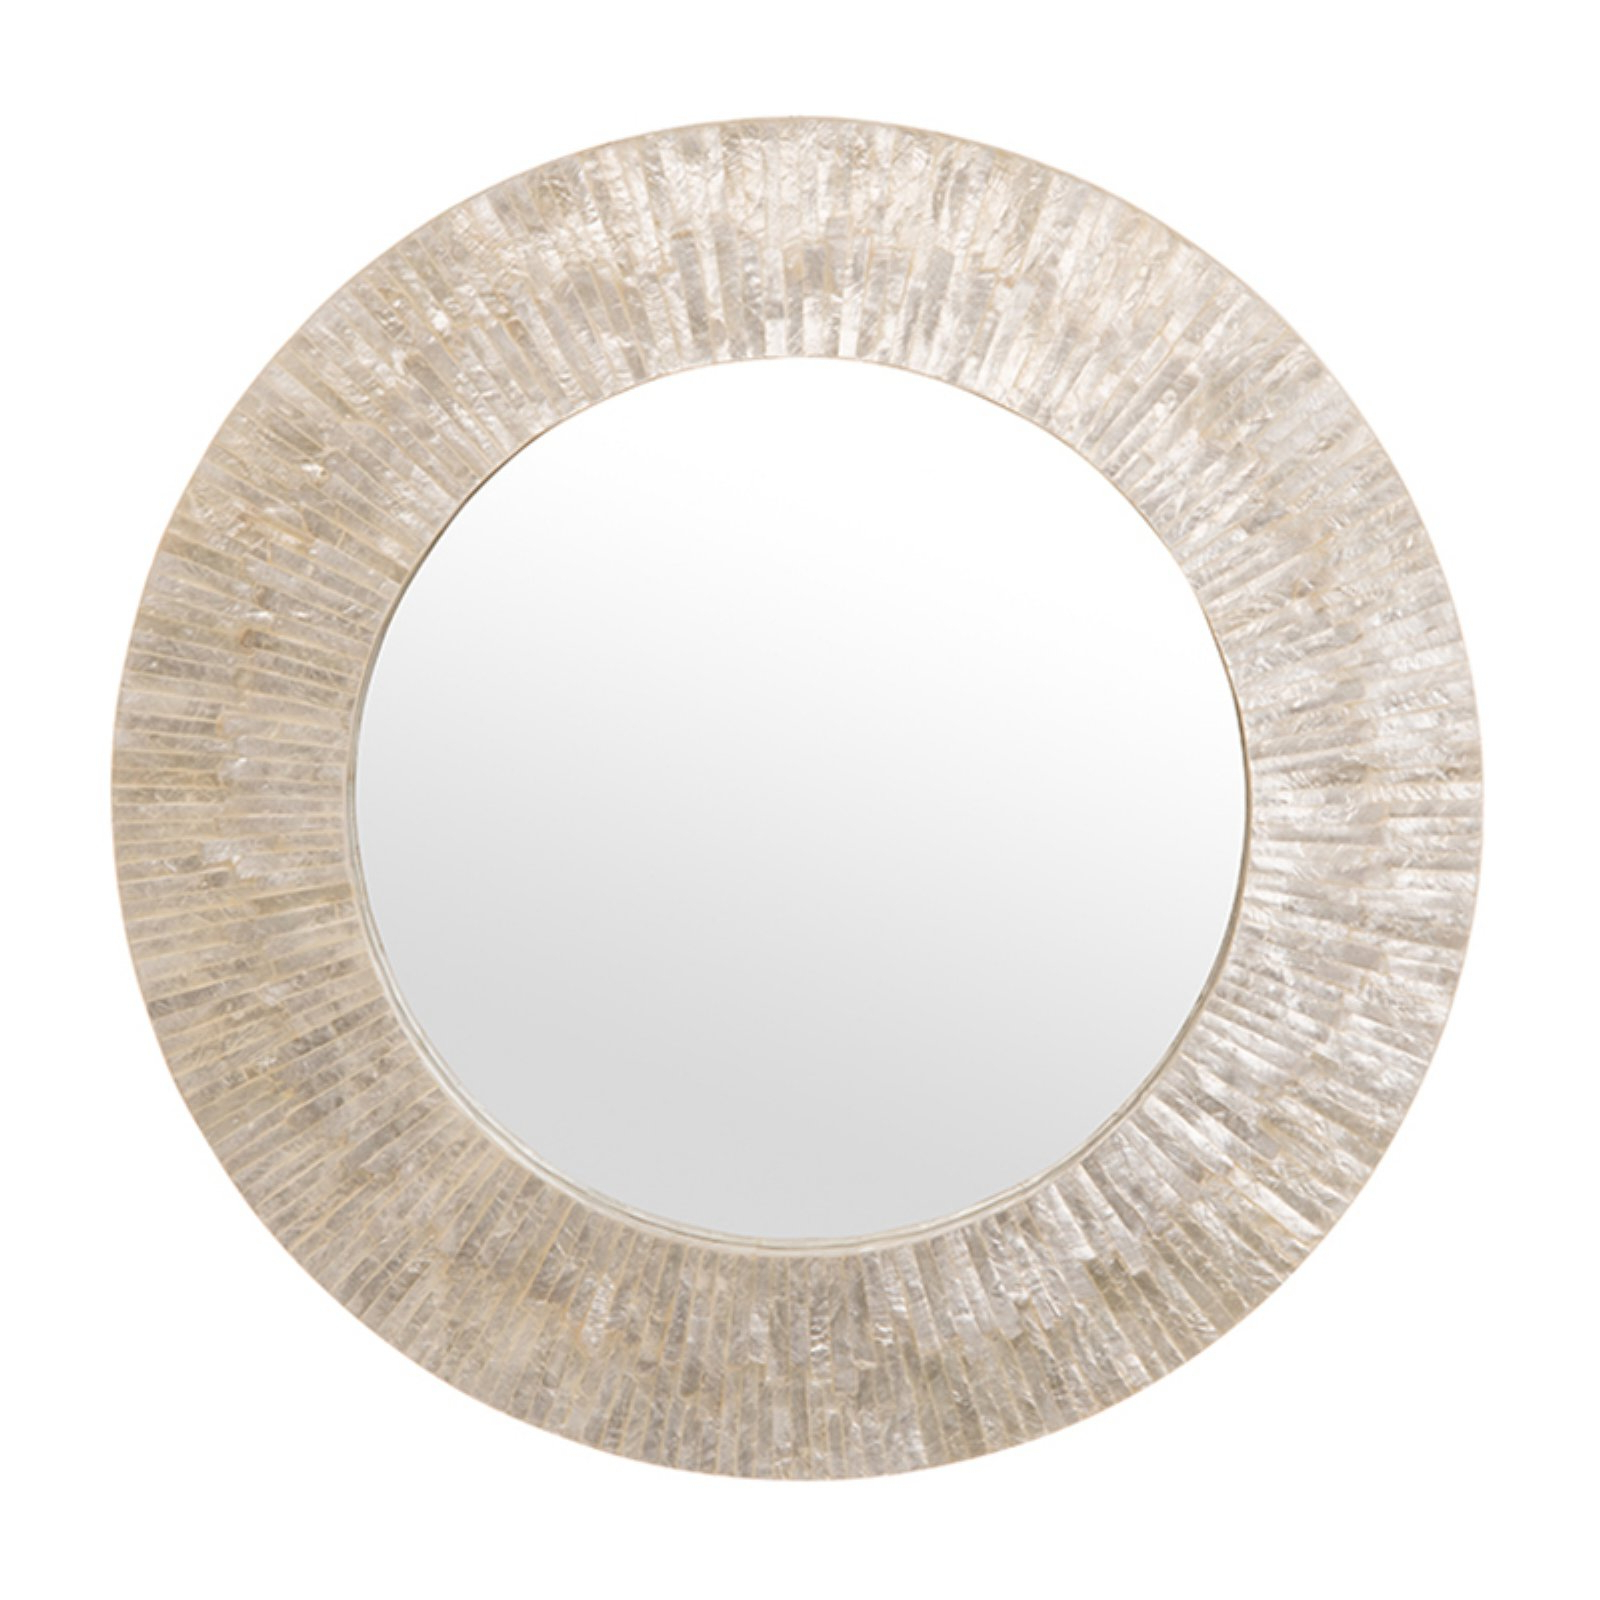 Kouboo Round Capiz Seashell Sunray Wall Mirror – 24W X 24H Within Most Current Sun Ray Wall Mirrors (View 7 of 20)